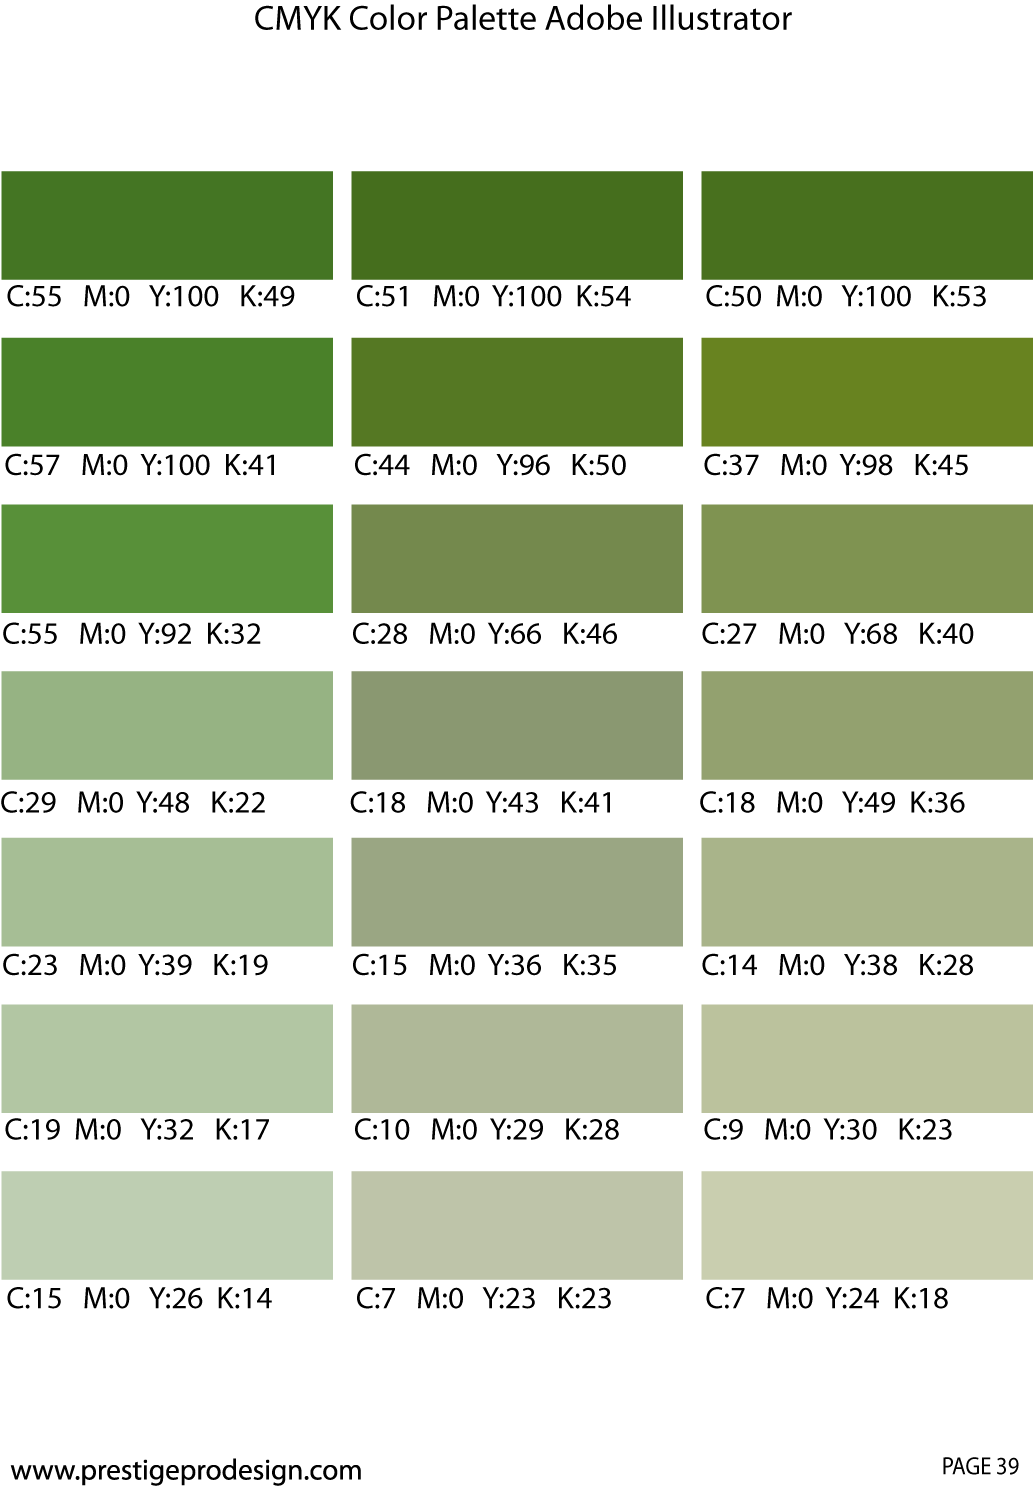 Valspar Colour Chart Green Pantone Color Chart Pictures To Pin On Pinterest